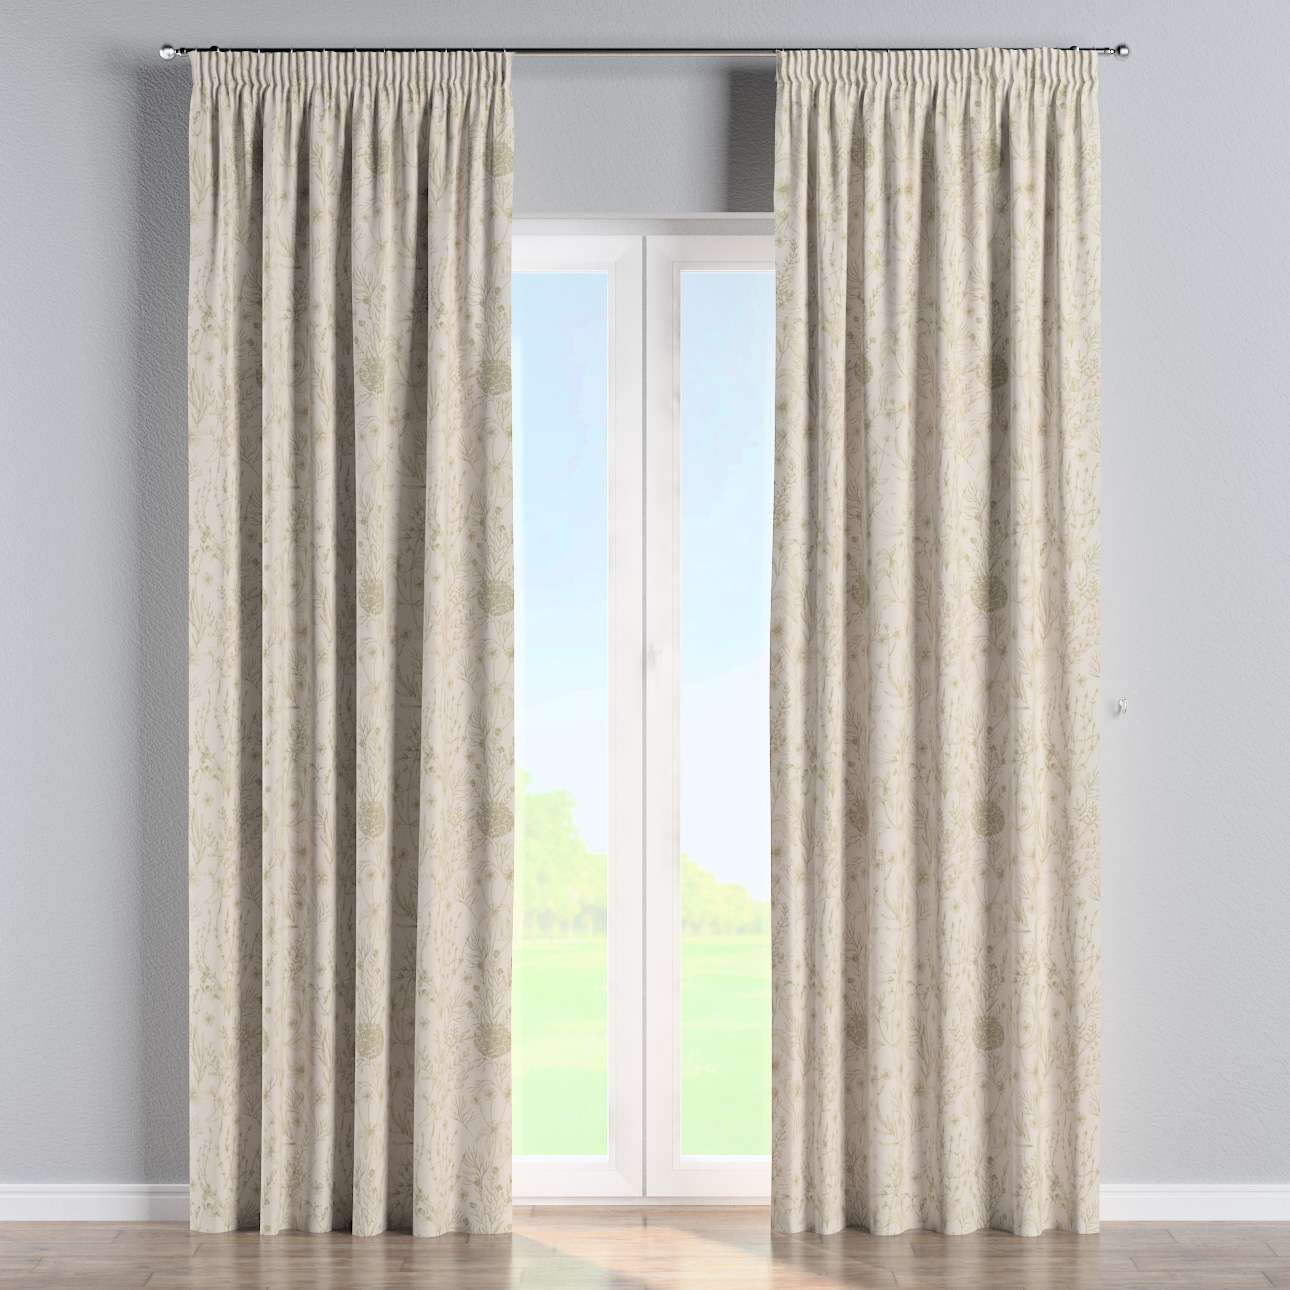 Pencil pleat curtains in collection Nordic, fabric: 142-92